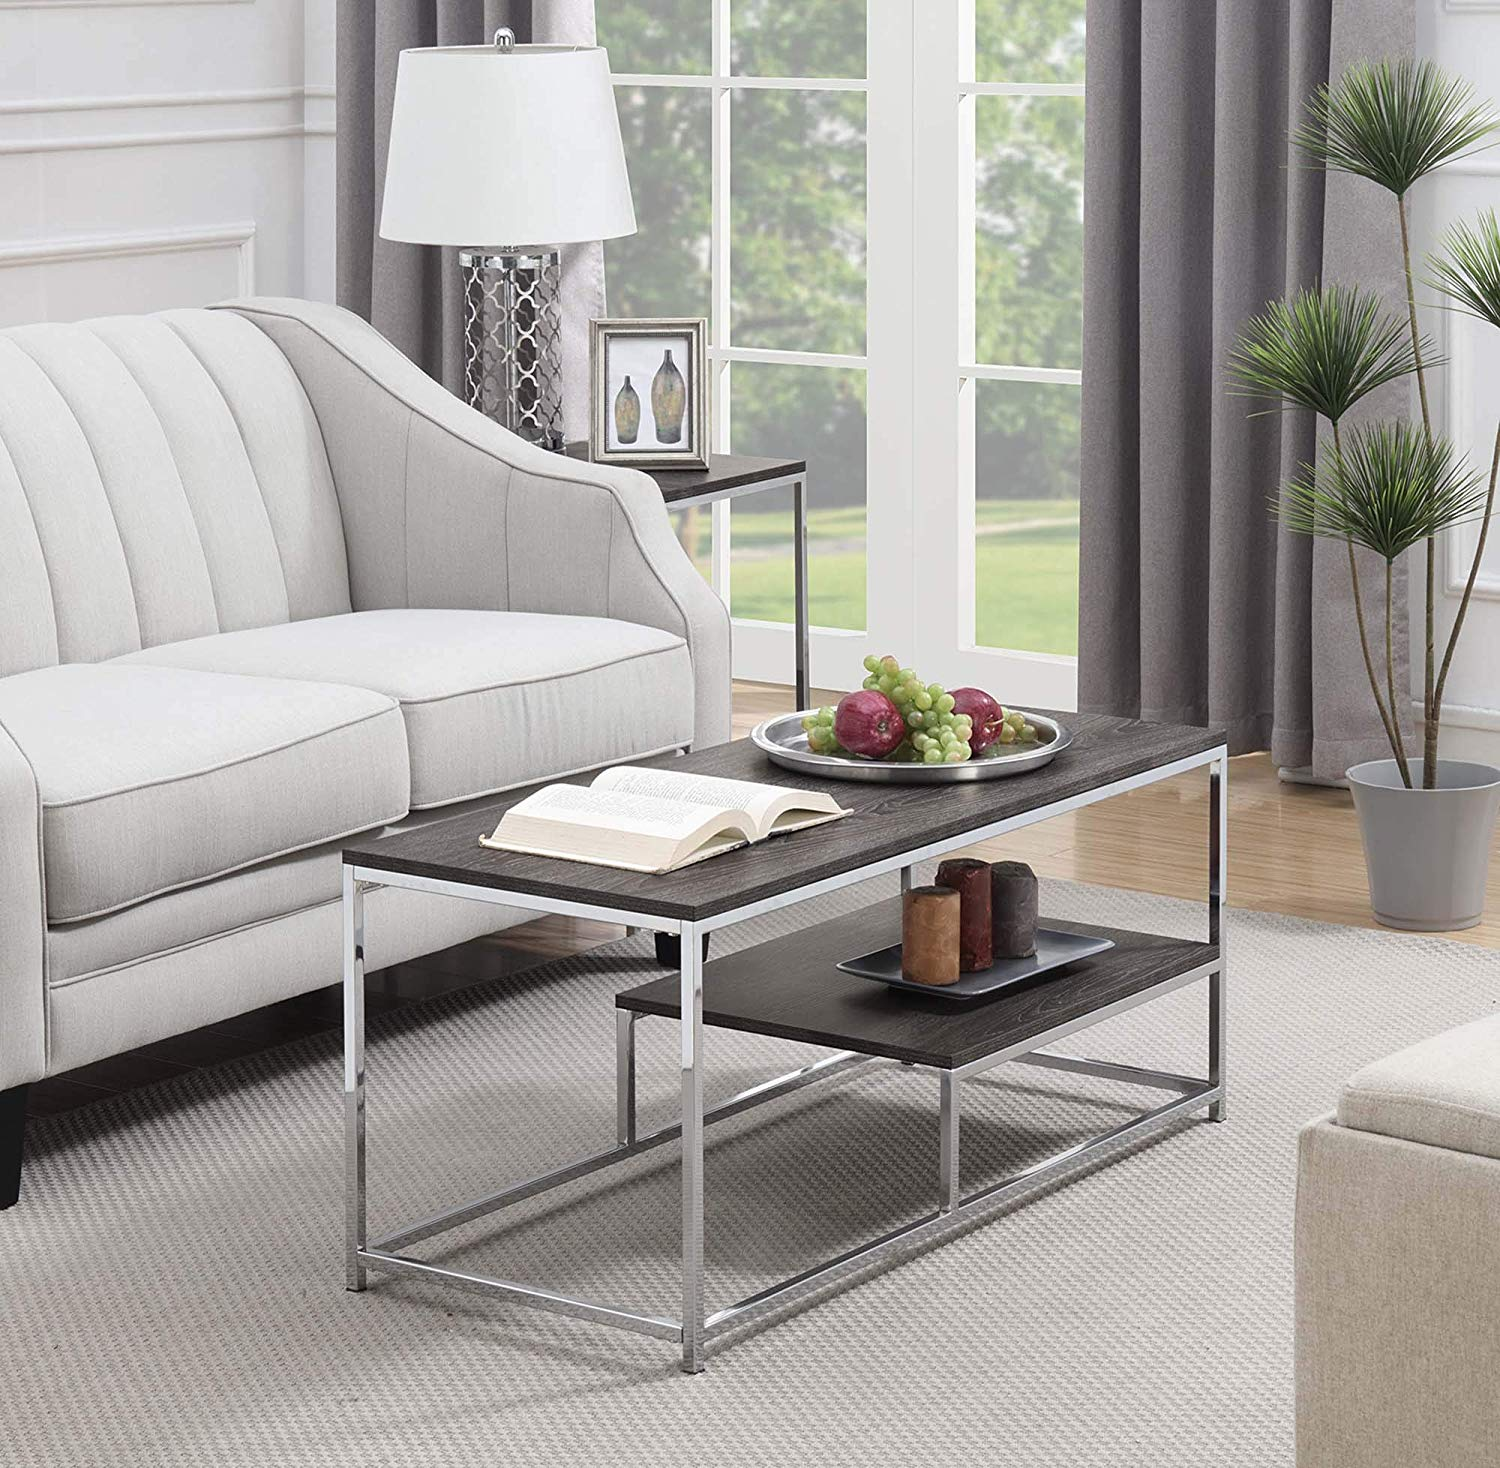 convenience concepts wilshire coffee table room essentials mixed material accent weathered gray chrome kitchen dining round gold legs wood teak rocking chairs raw side restaurant